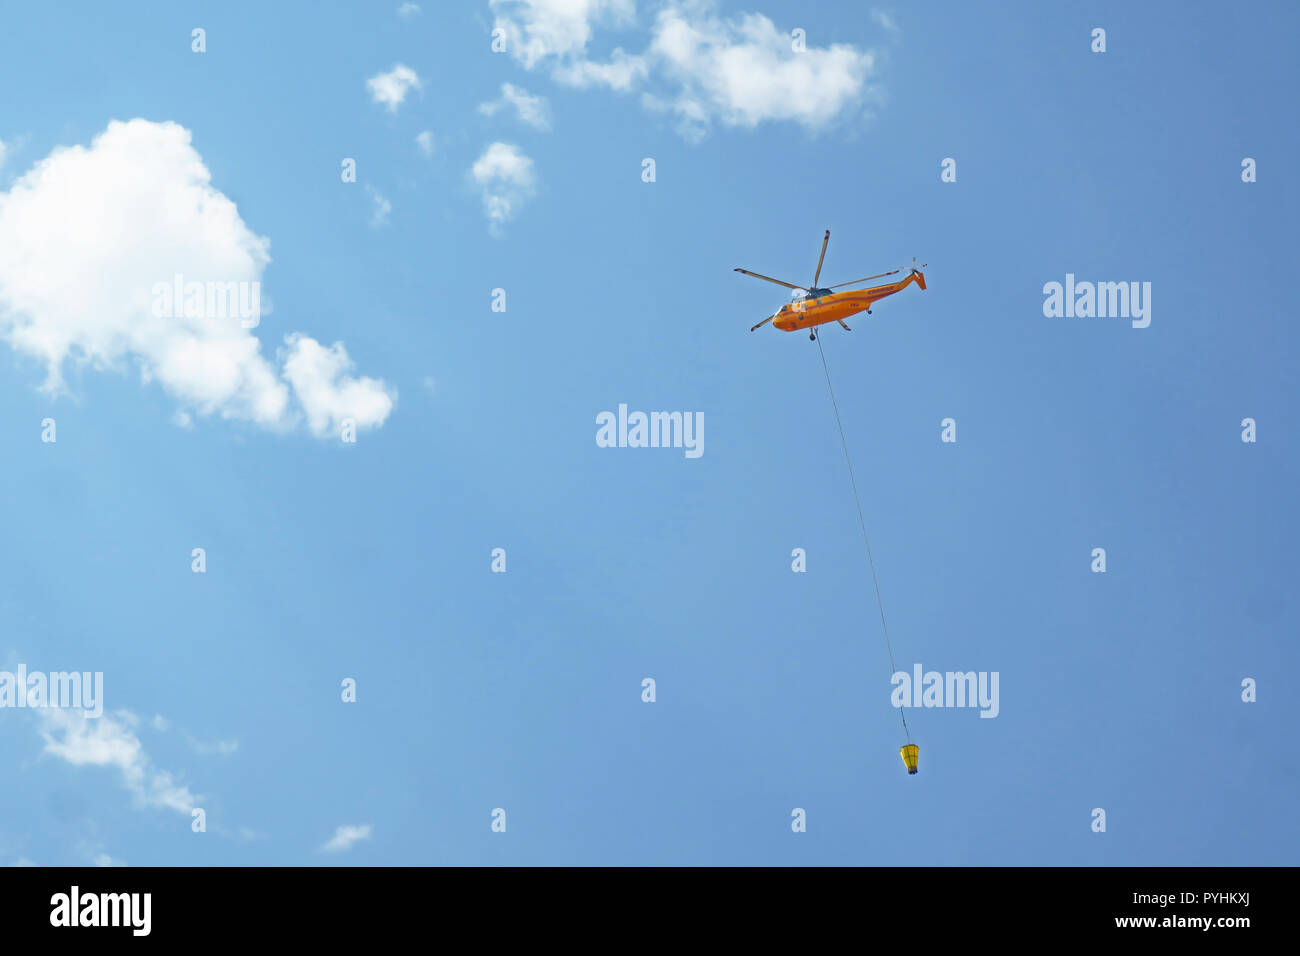 A yellow fire fighting helicopter flying to deliver water in Utah. - Stock Image